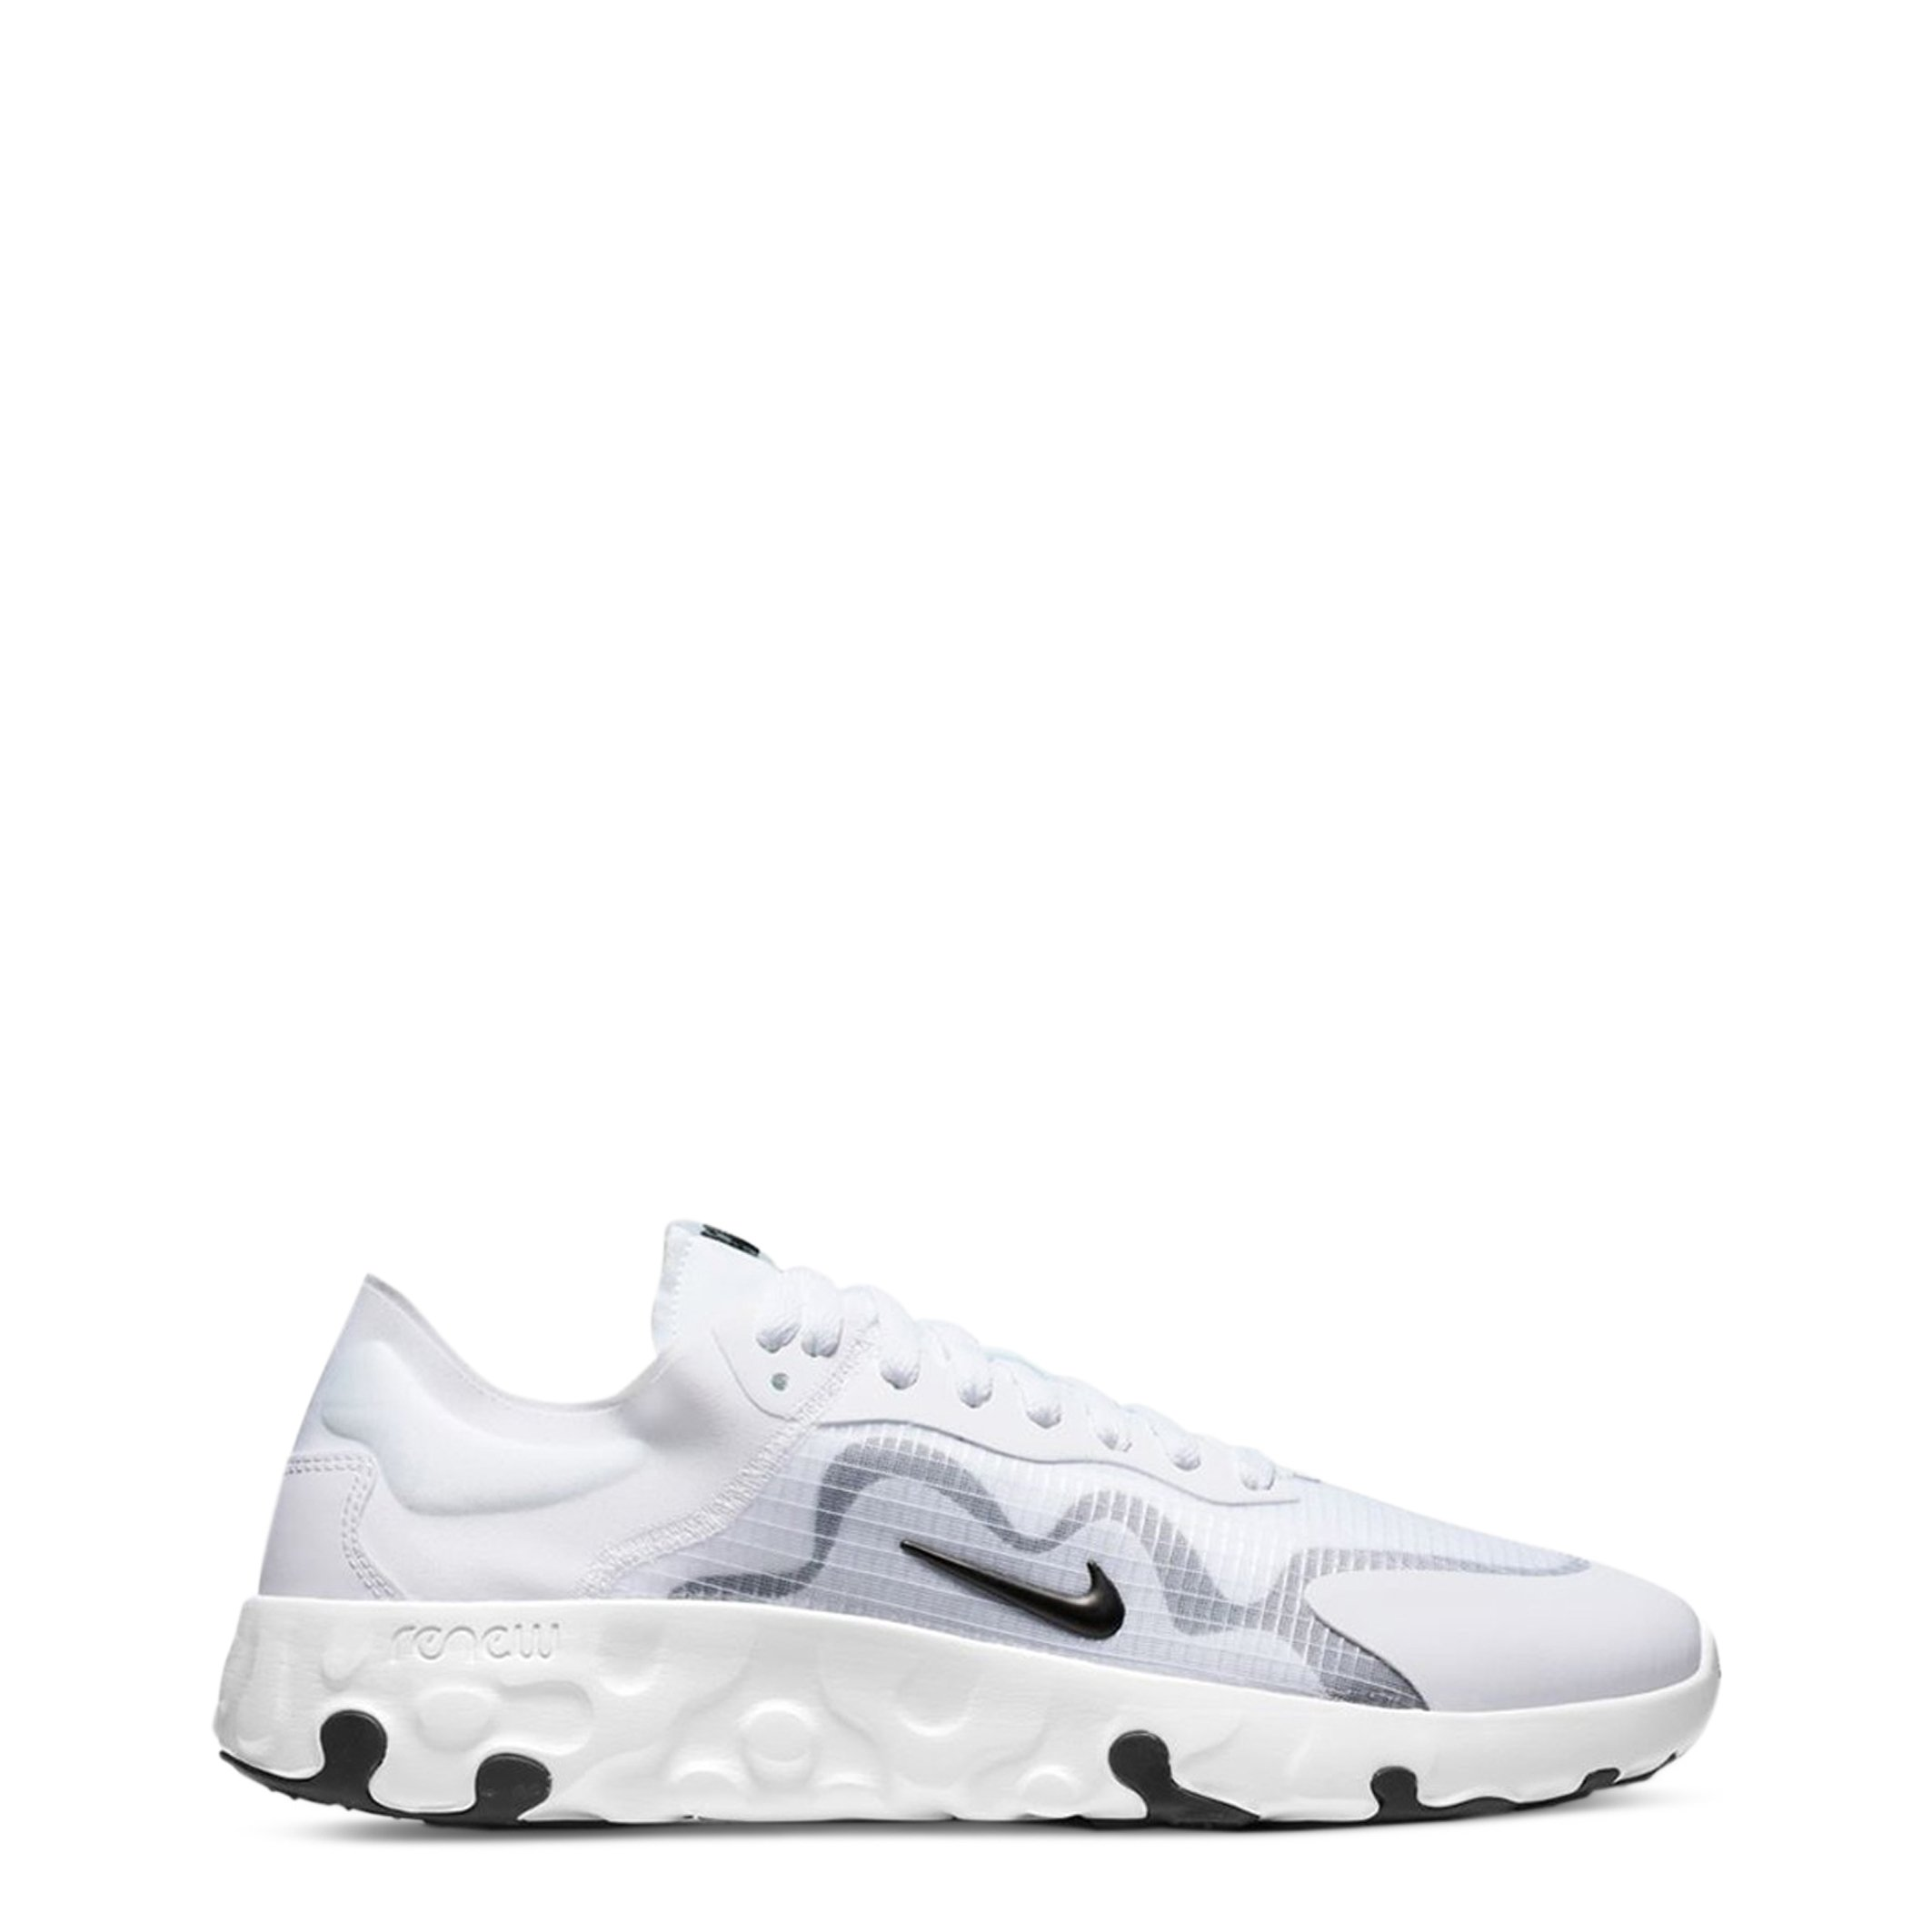 Nike Men's Renew Lucent Trainers Various Colours BQ4235 - white US 12